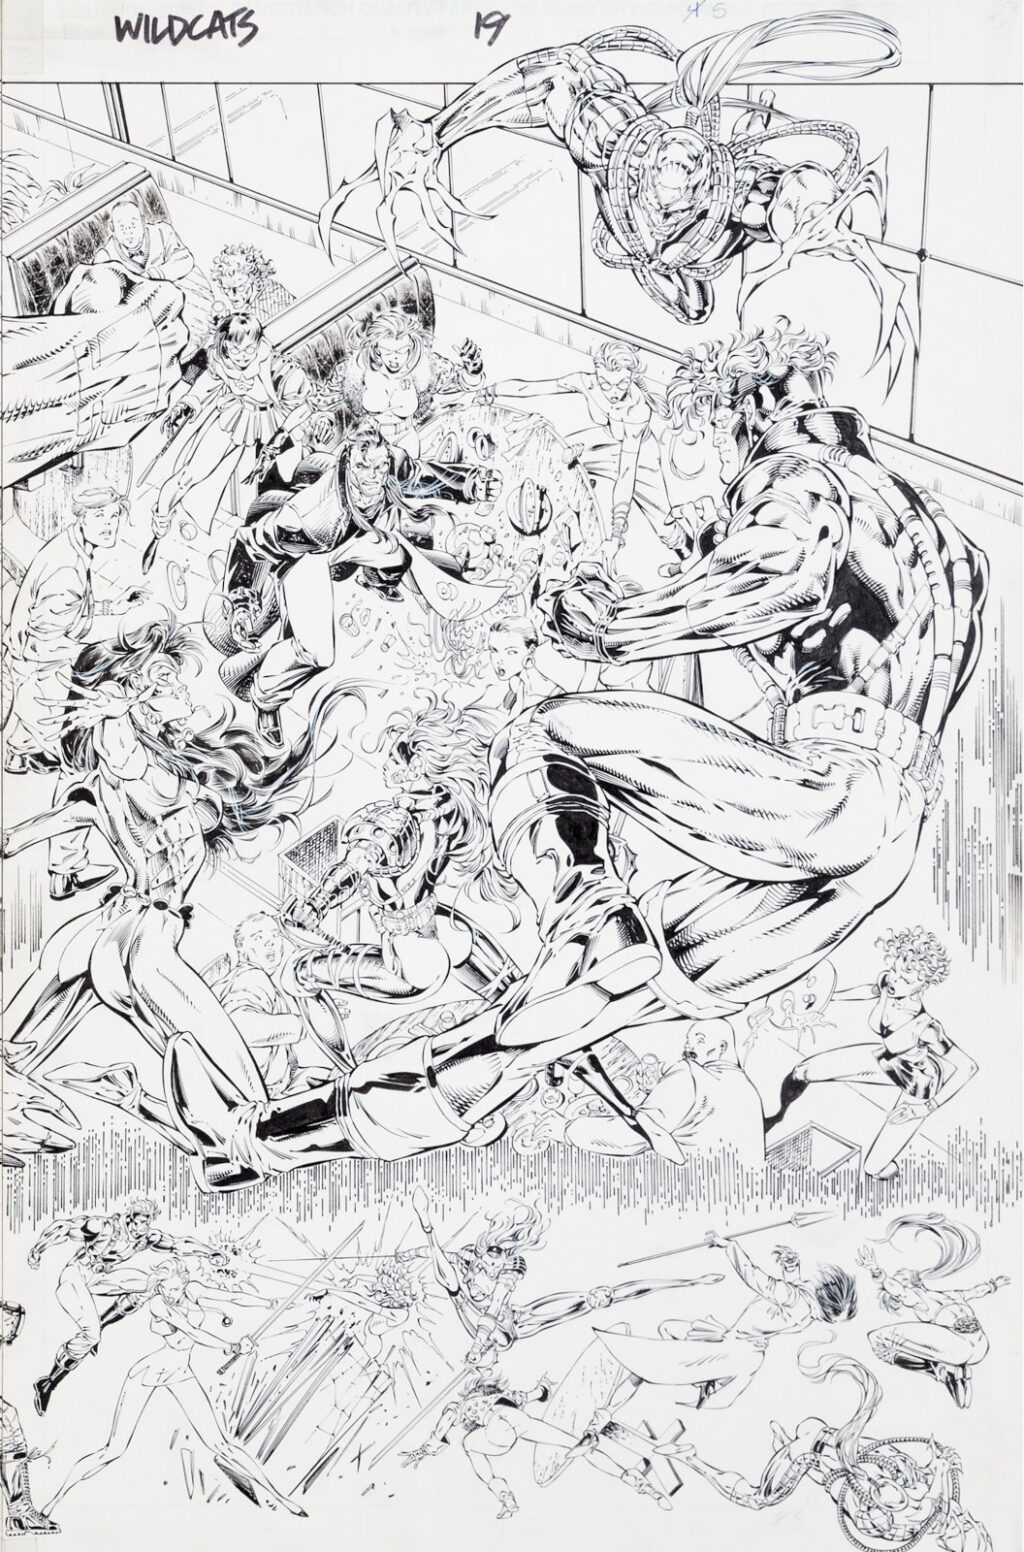 Wildcats issue 19 splash by Jim Lee and Richard Bennett 2